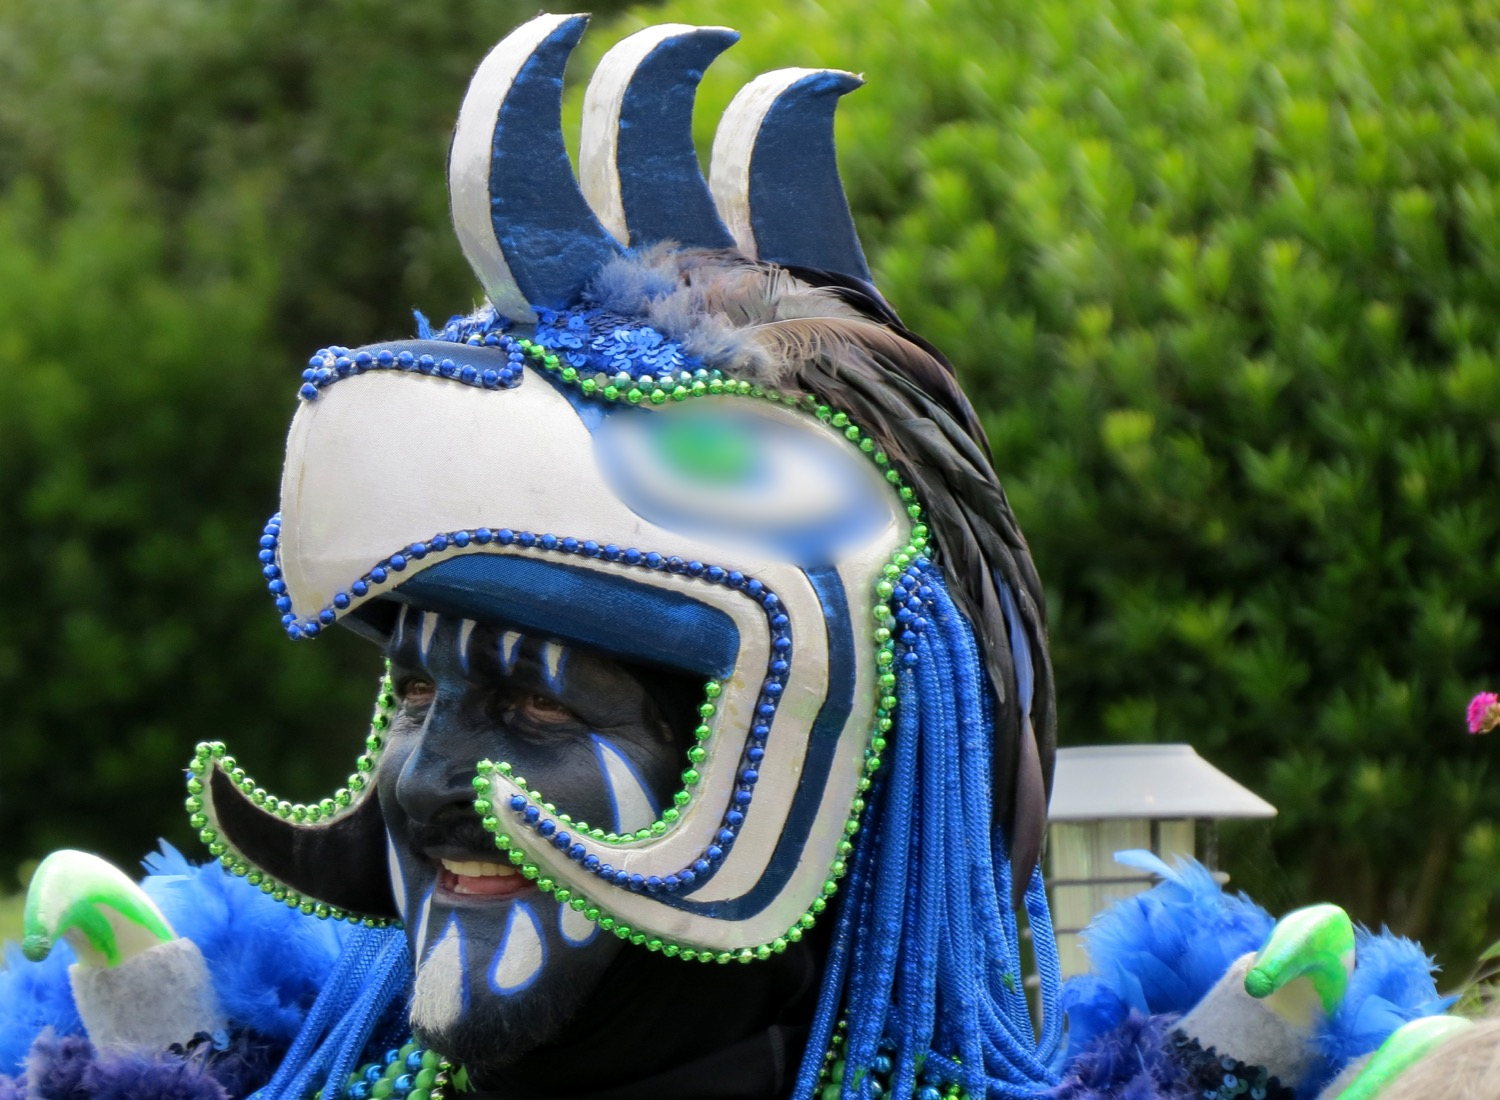 The Seahawk Rooster AKA Nick Goins_edite